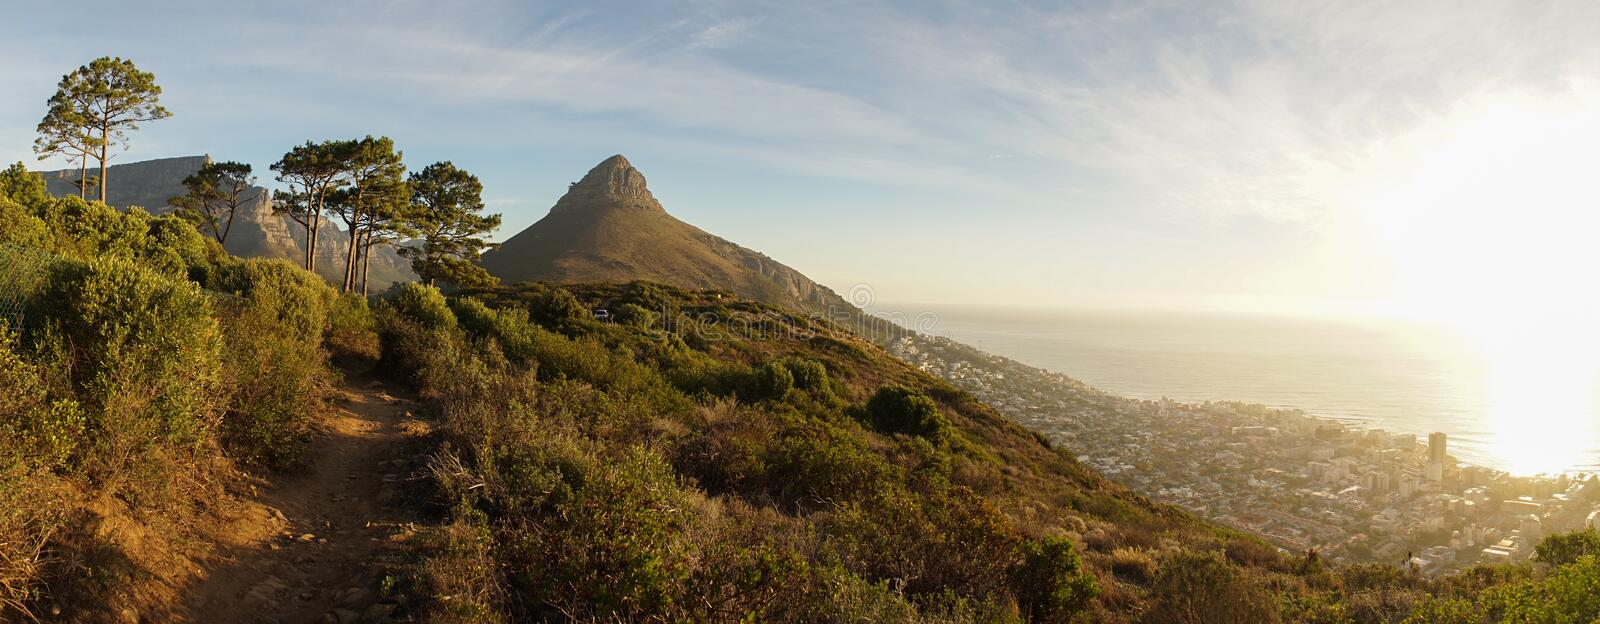 Cape Town Table Mountains in South Africa. Trees and nice light royalty free stock image